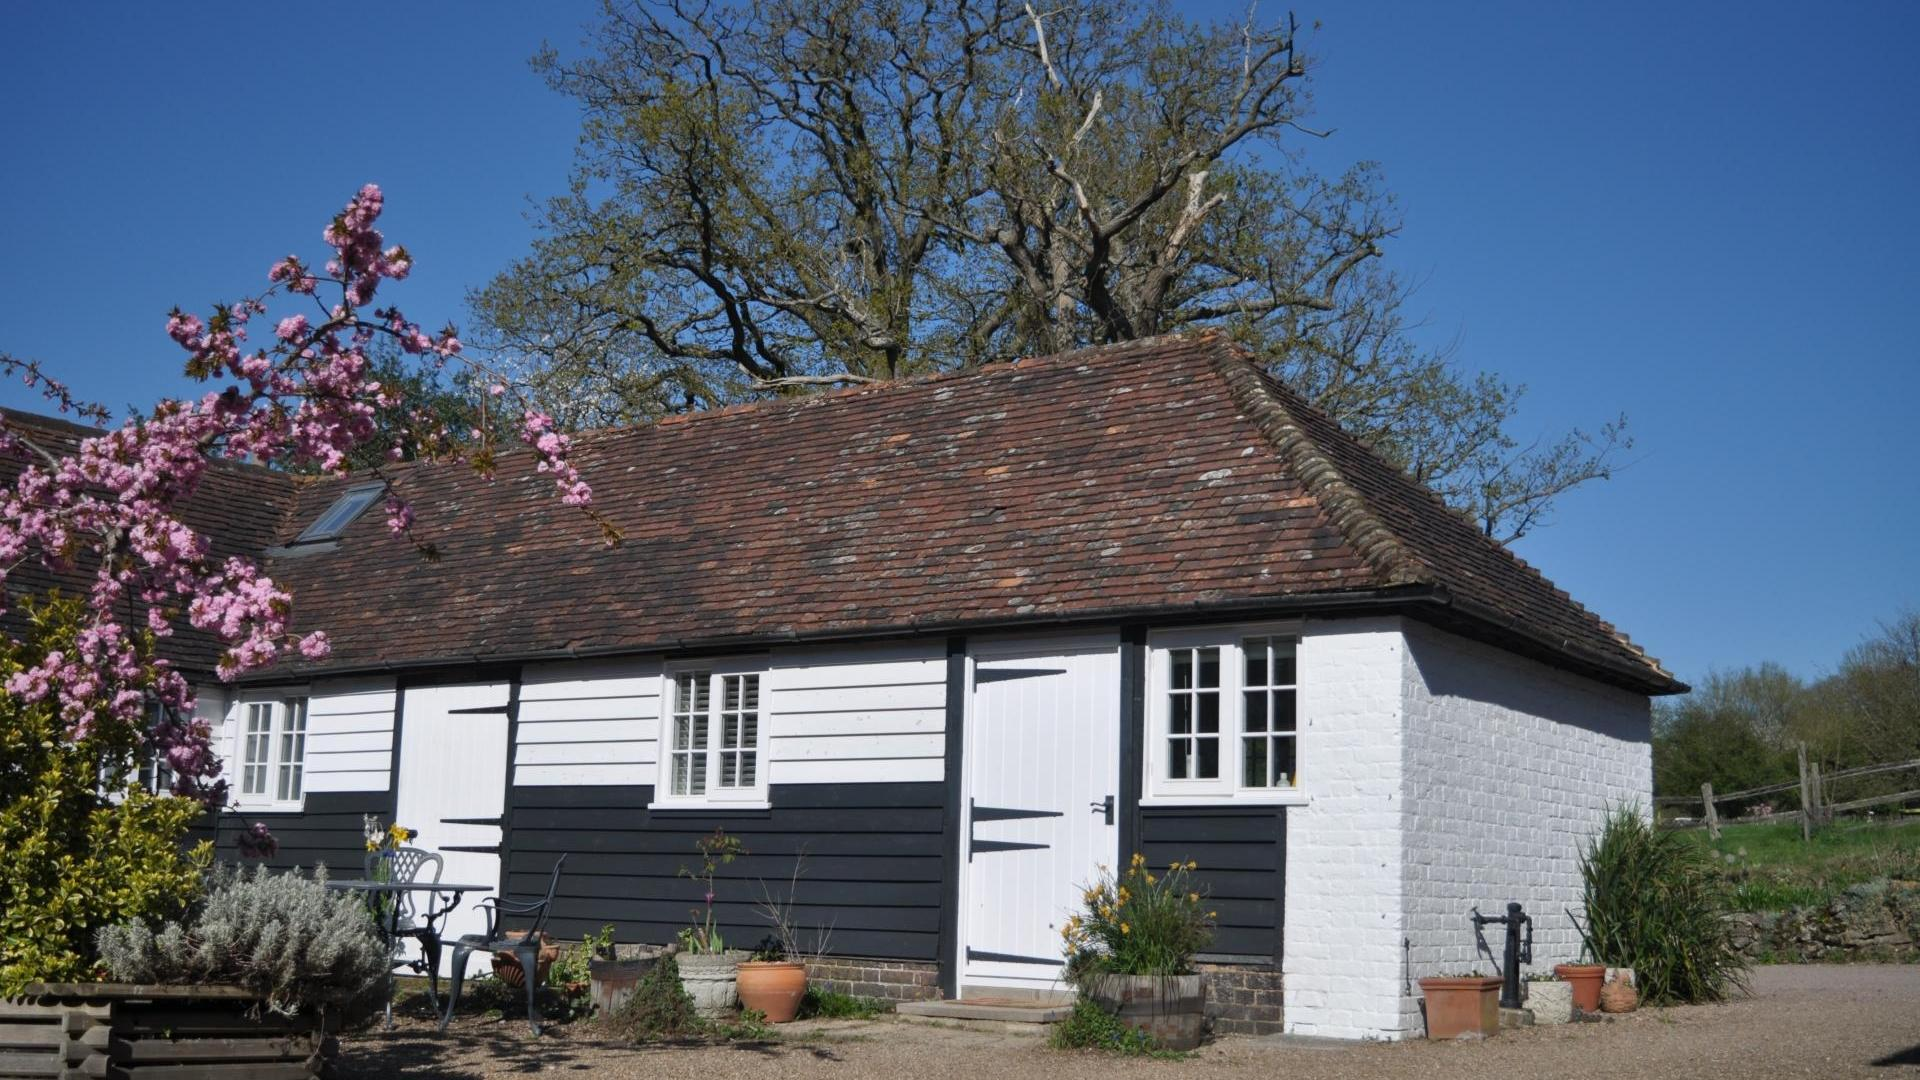 2 Bedroom Private cottage in Kent, United Kingdom